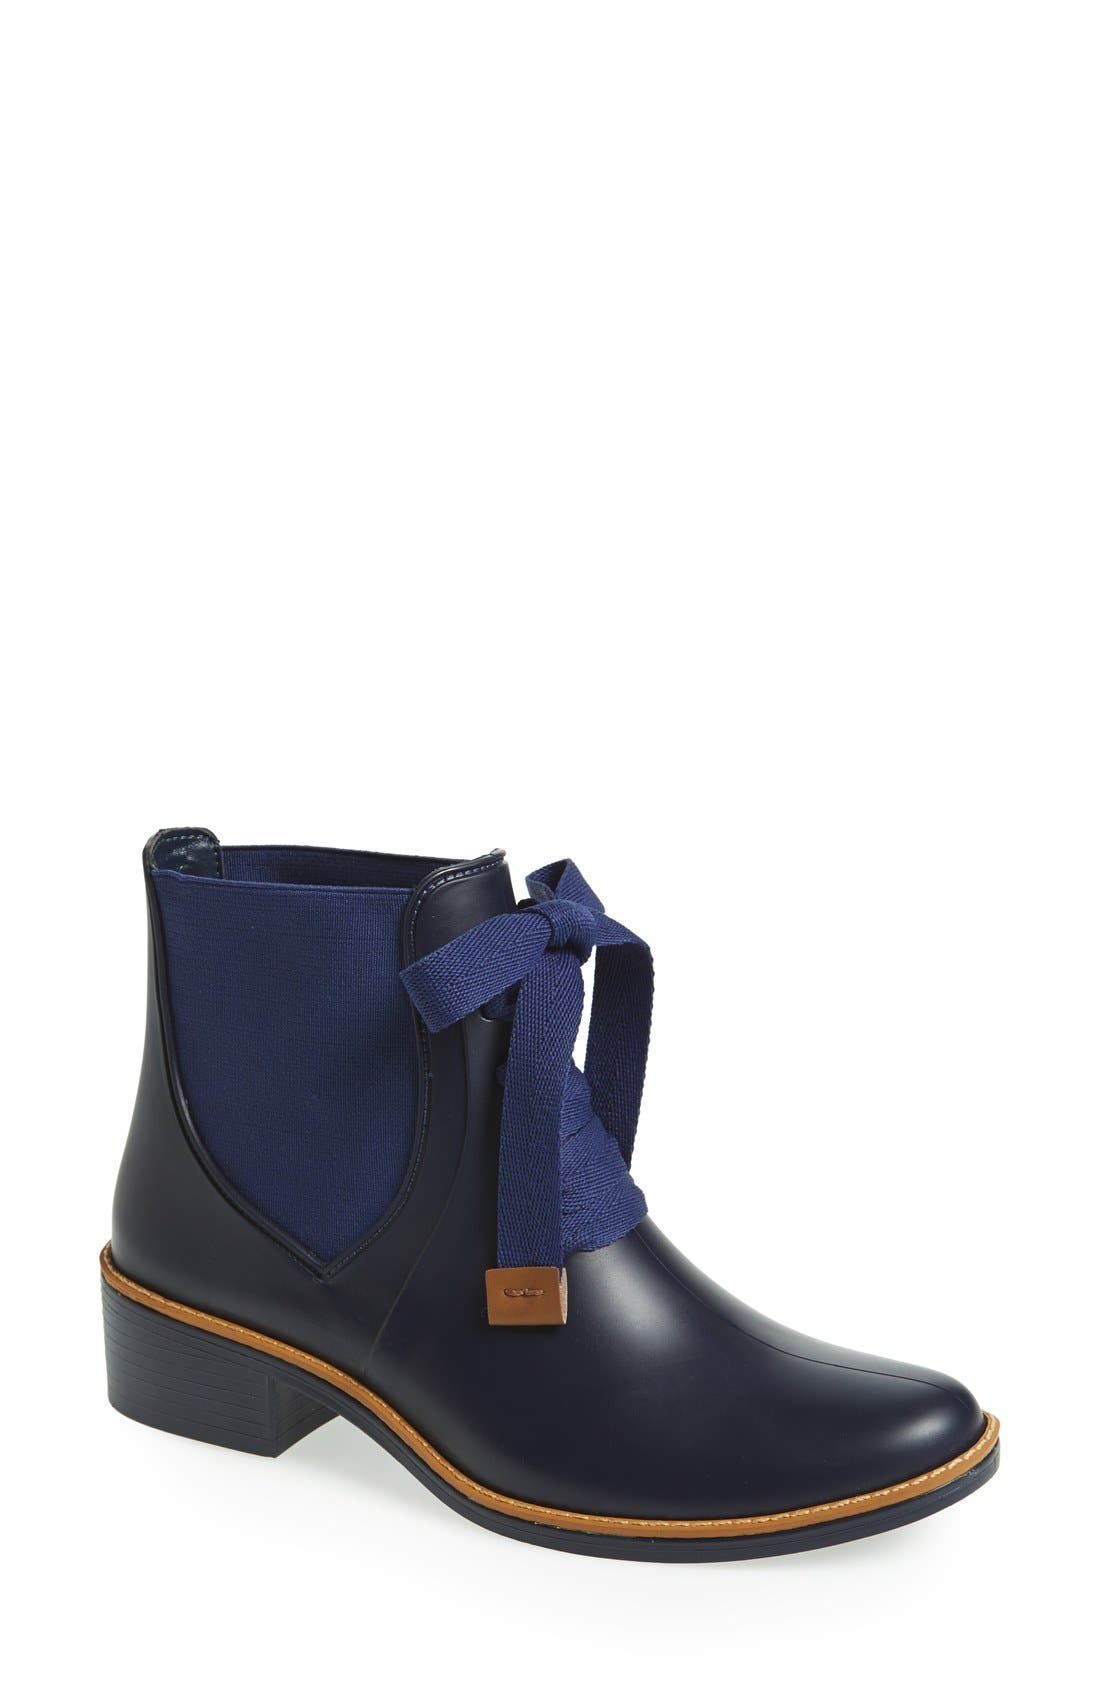 Bernardo Lacey Short Waterproof Rain Boot (Women)